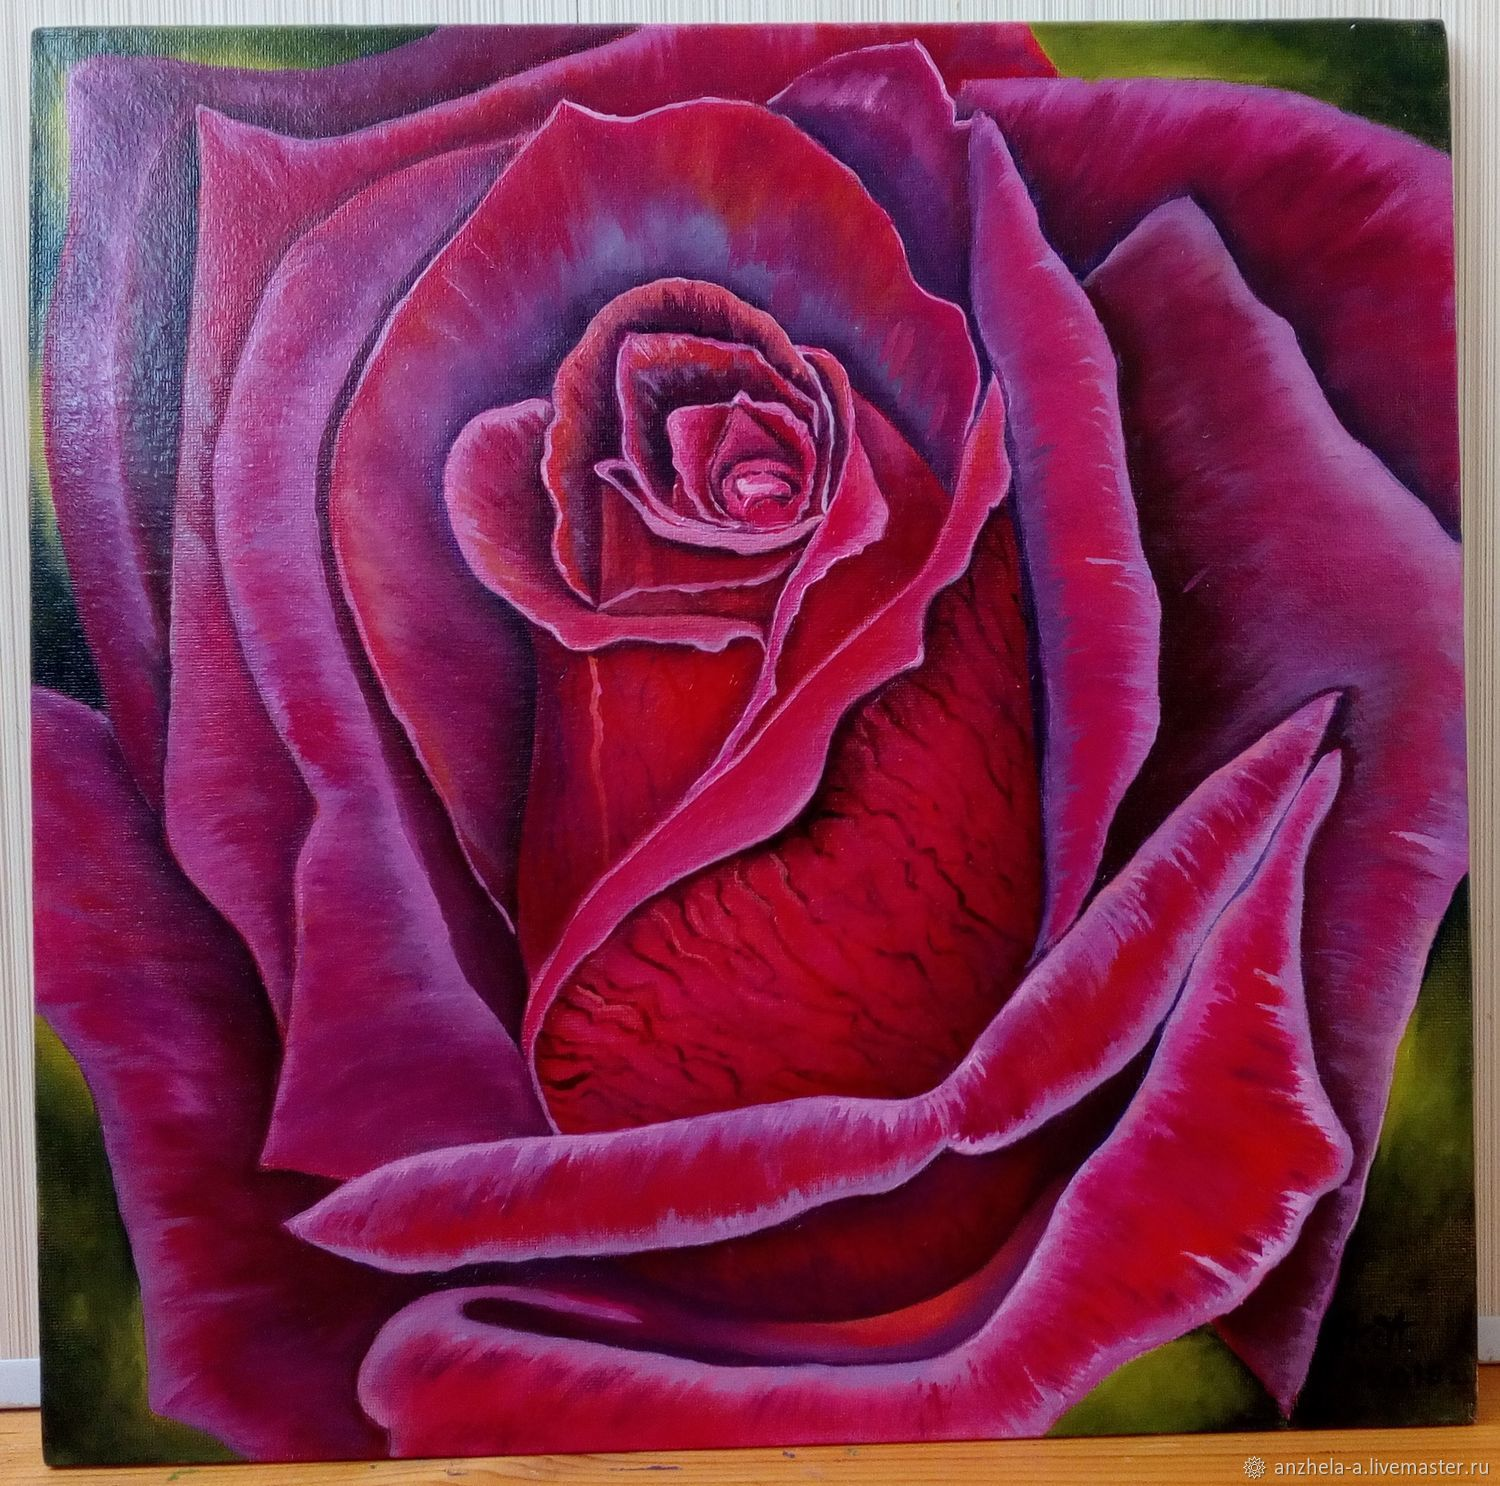 Painting with a maroon rose ' Velvet of a maroon rose', Pictures, Moscow,  Фото №1